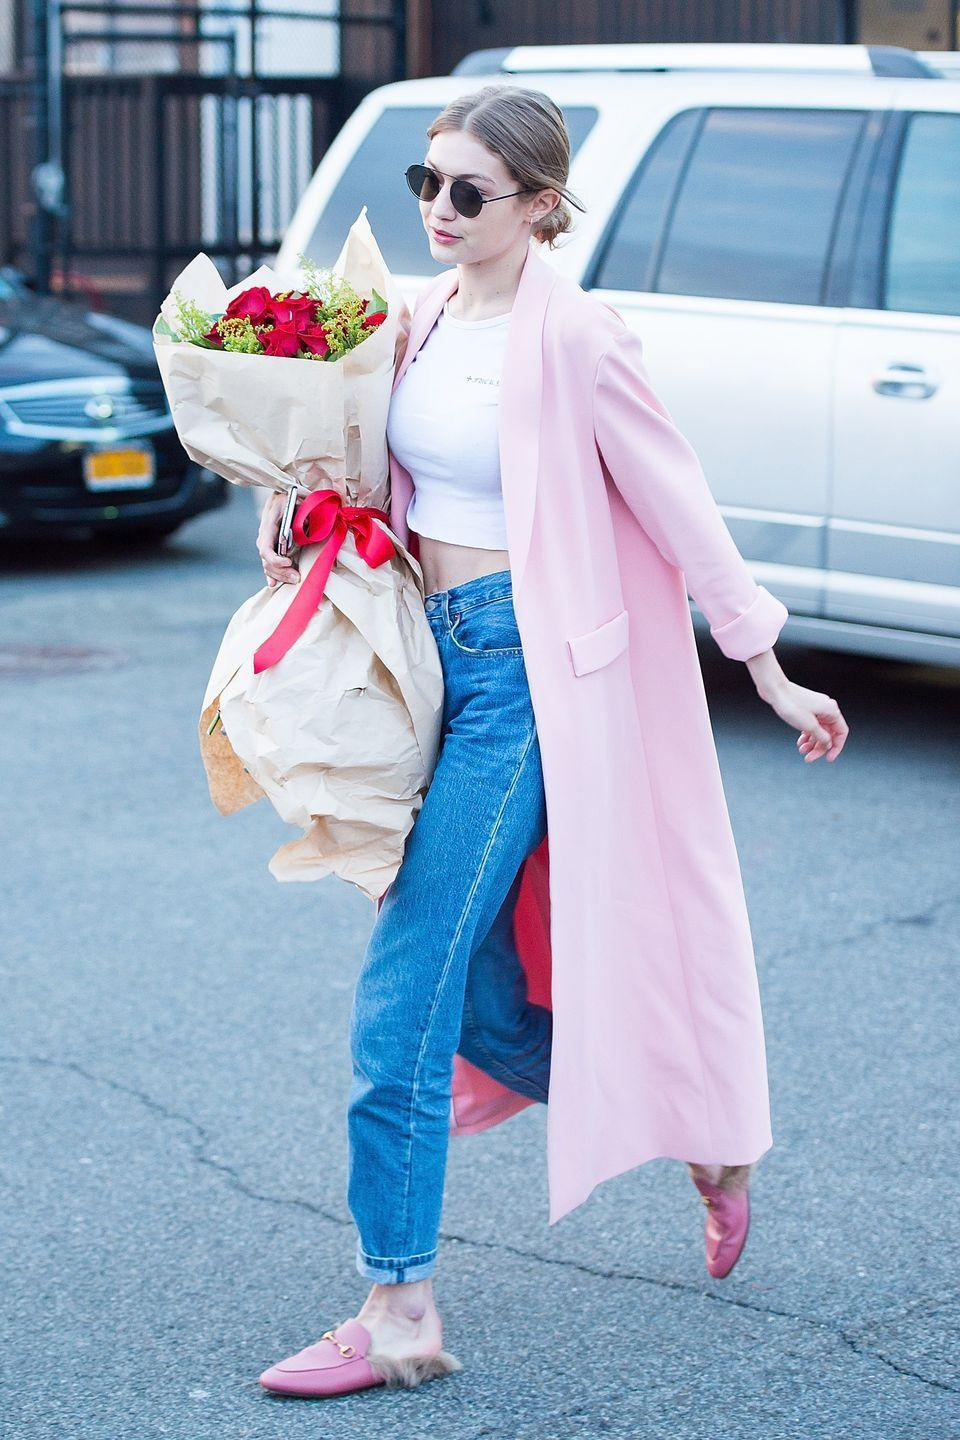 """<p>In a cropped Bella Hadid x Chrome Hearts white tee under an <a href=""""https://www.aliceandolivia.com/angela-long-coat.html"""" rel=""""nofollow noopener"""" target=""""_blank"""" data-ylk=""""slk:Alice + Olivia pink duster coat"""" class=""""link rapid-noclick-resp"""">Alice + Olivia pink duster coat</a> with vintage Levi's jeans, pink leather Gucci slippers and black L.G.R. Tuareg aviator sunglasses while out in New York City on her birthday. </p>"""